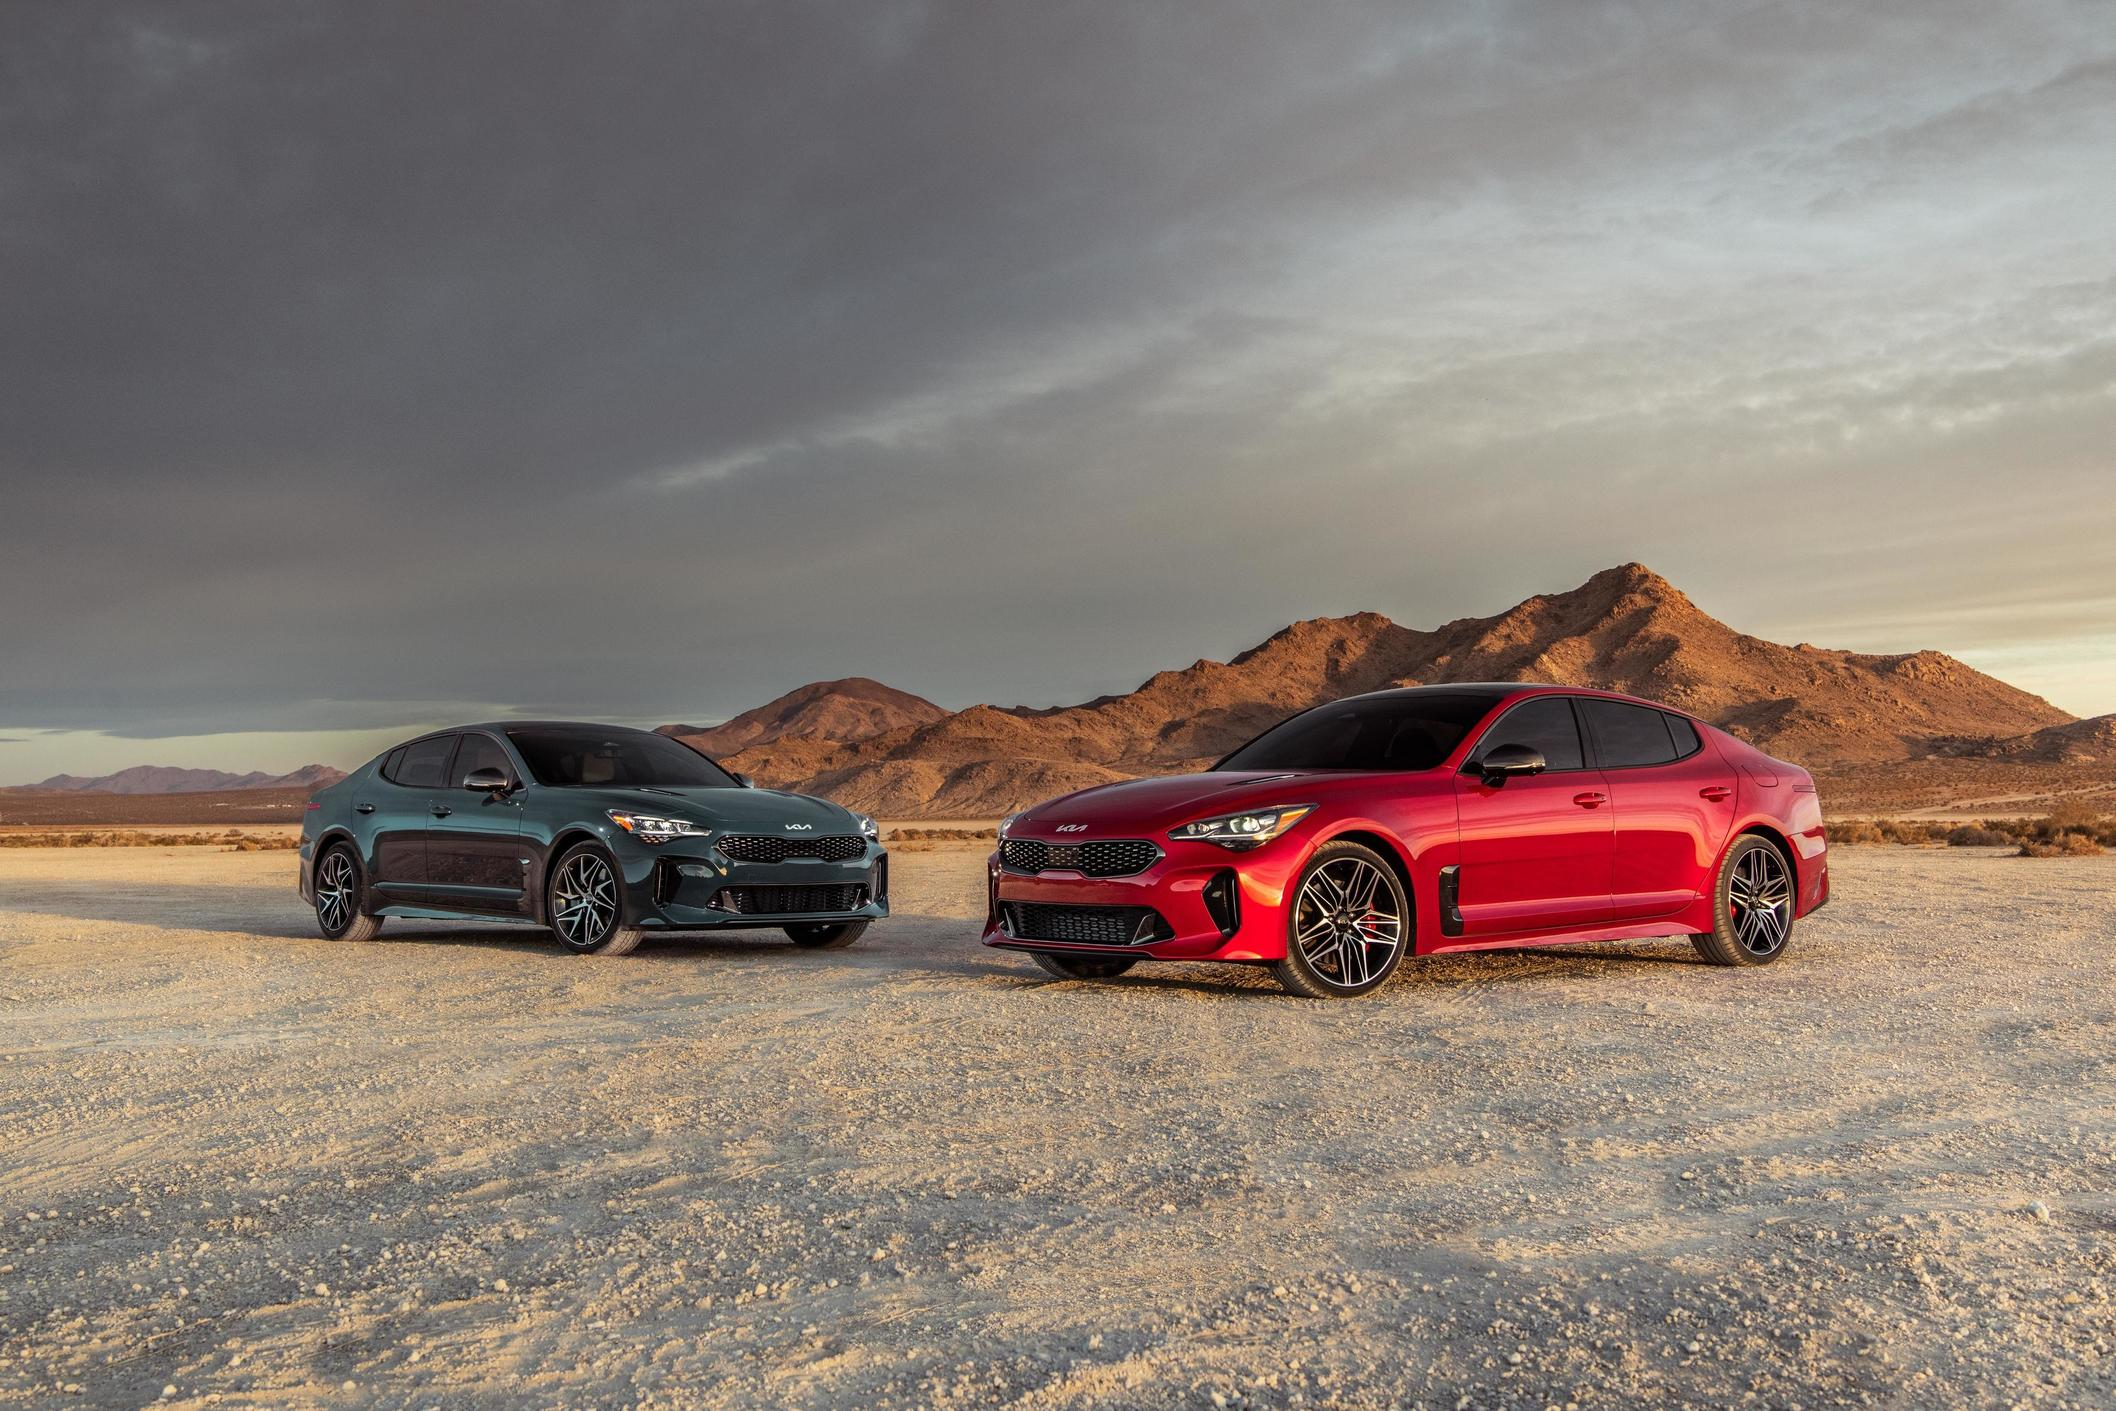 Kia's Proven Sport Machine, the Stinger Evolves with Precise Design, Tech and Performance Upgrades for 2022